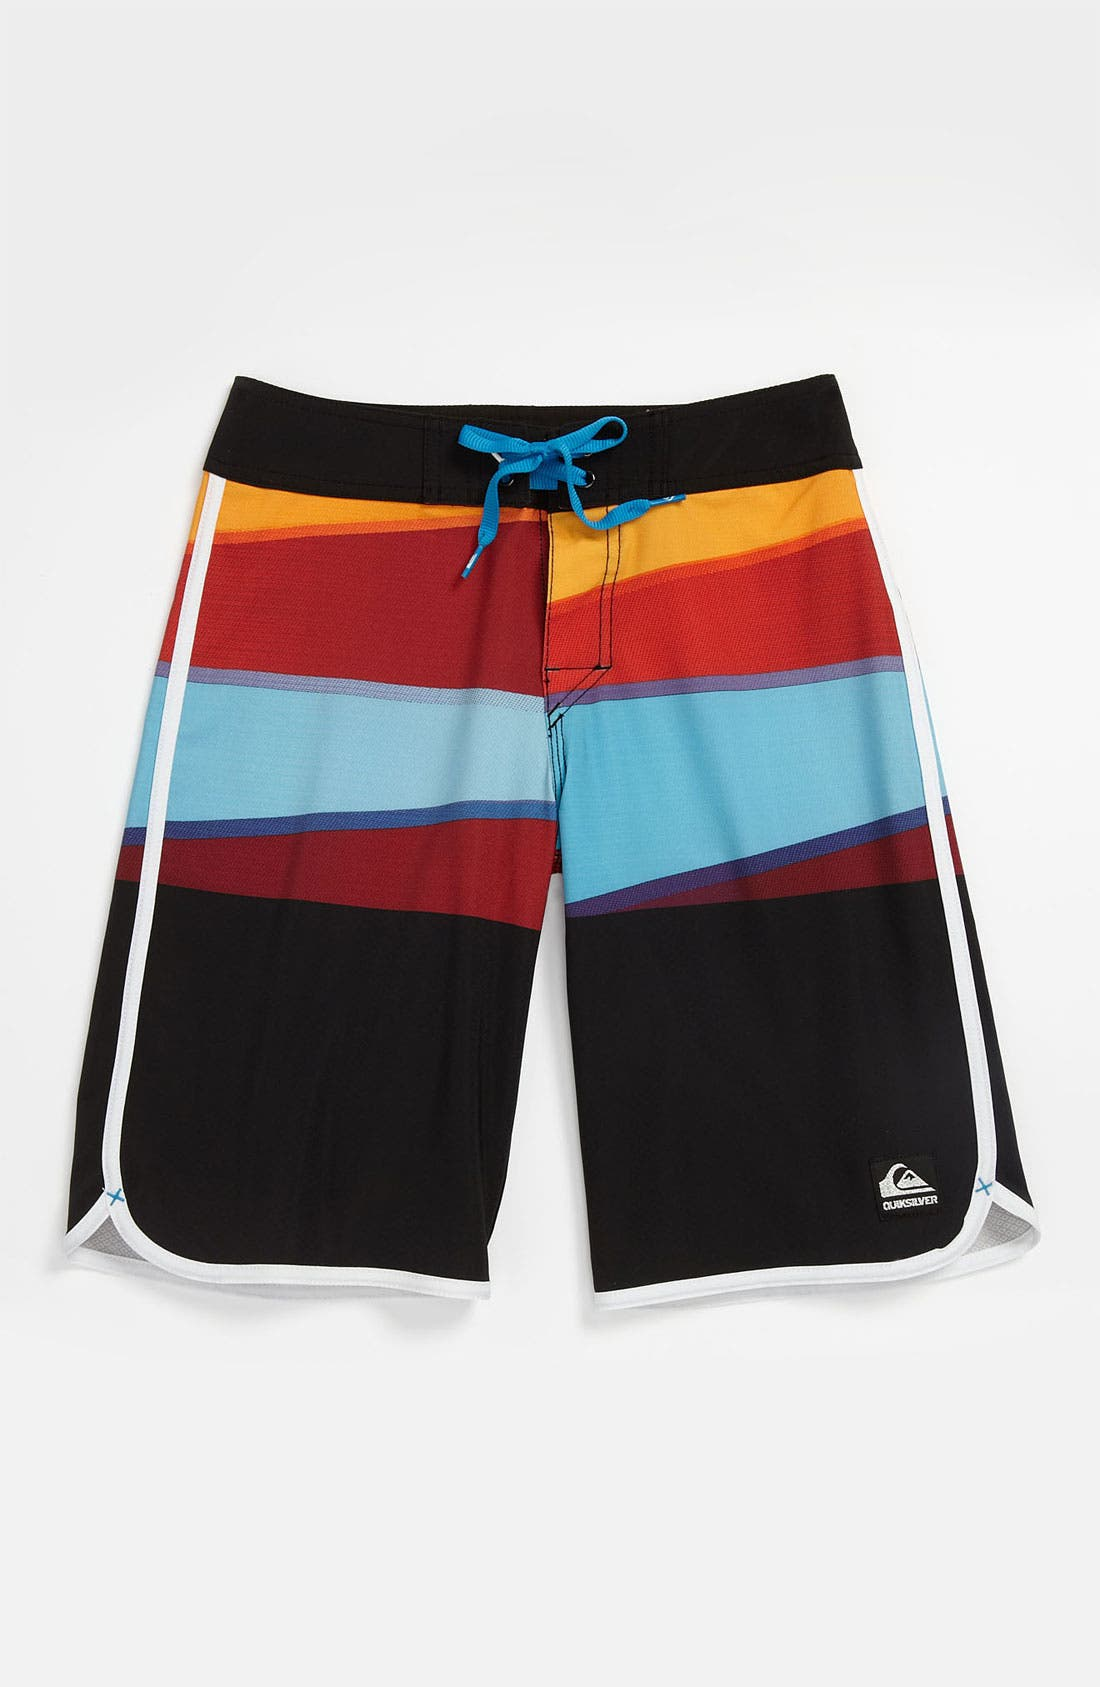 Main Image - Quiksilver 'Repel' Board Shorts (Big Boys)